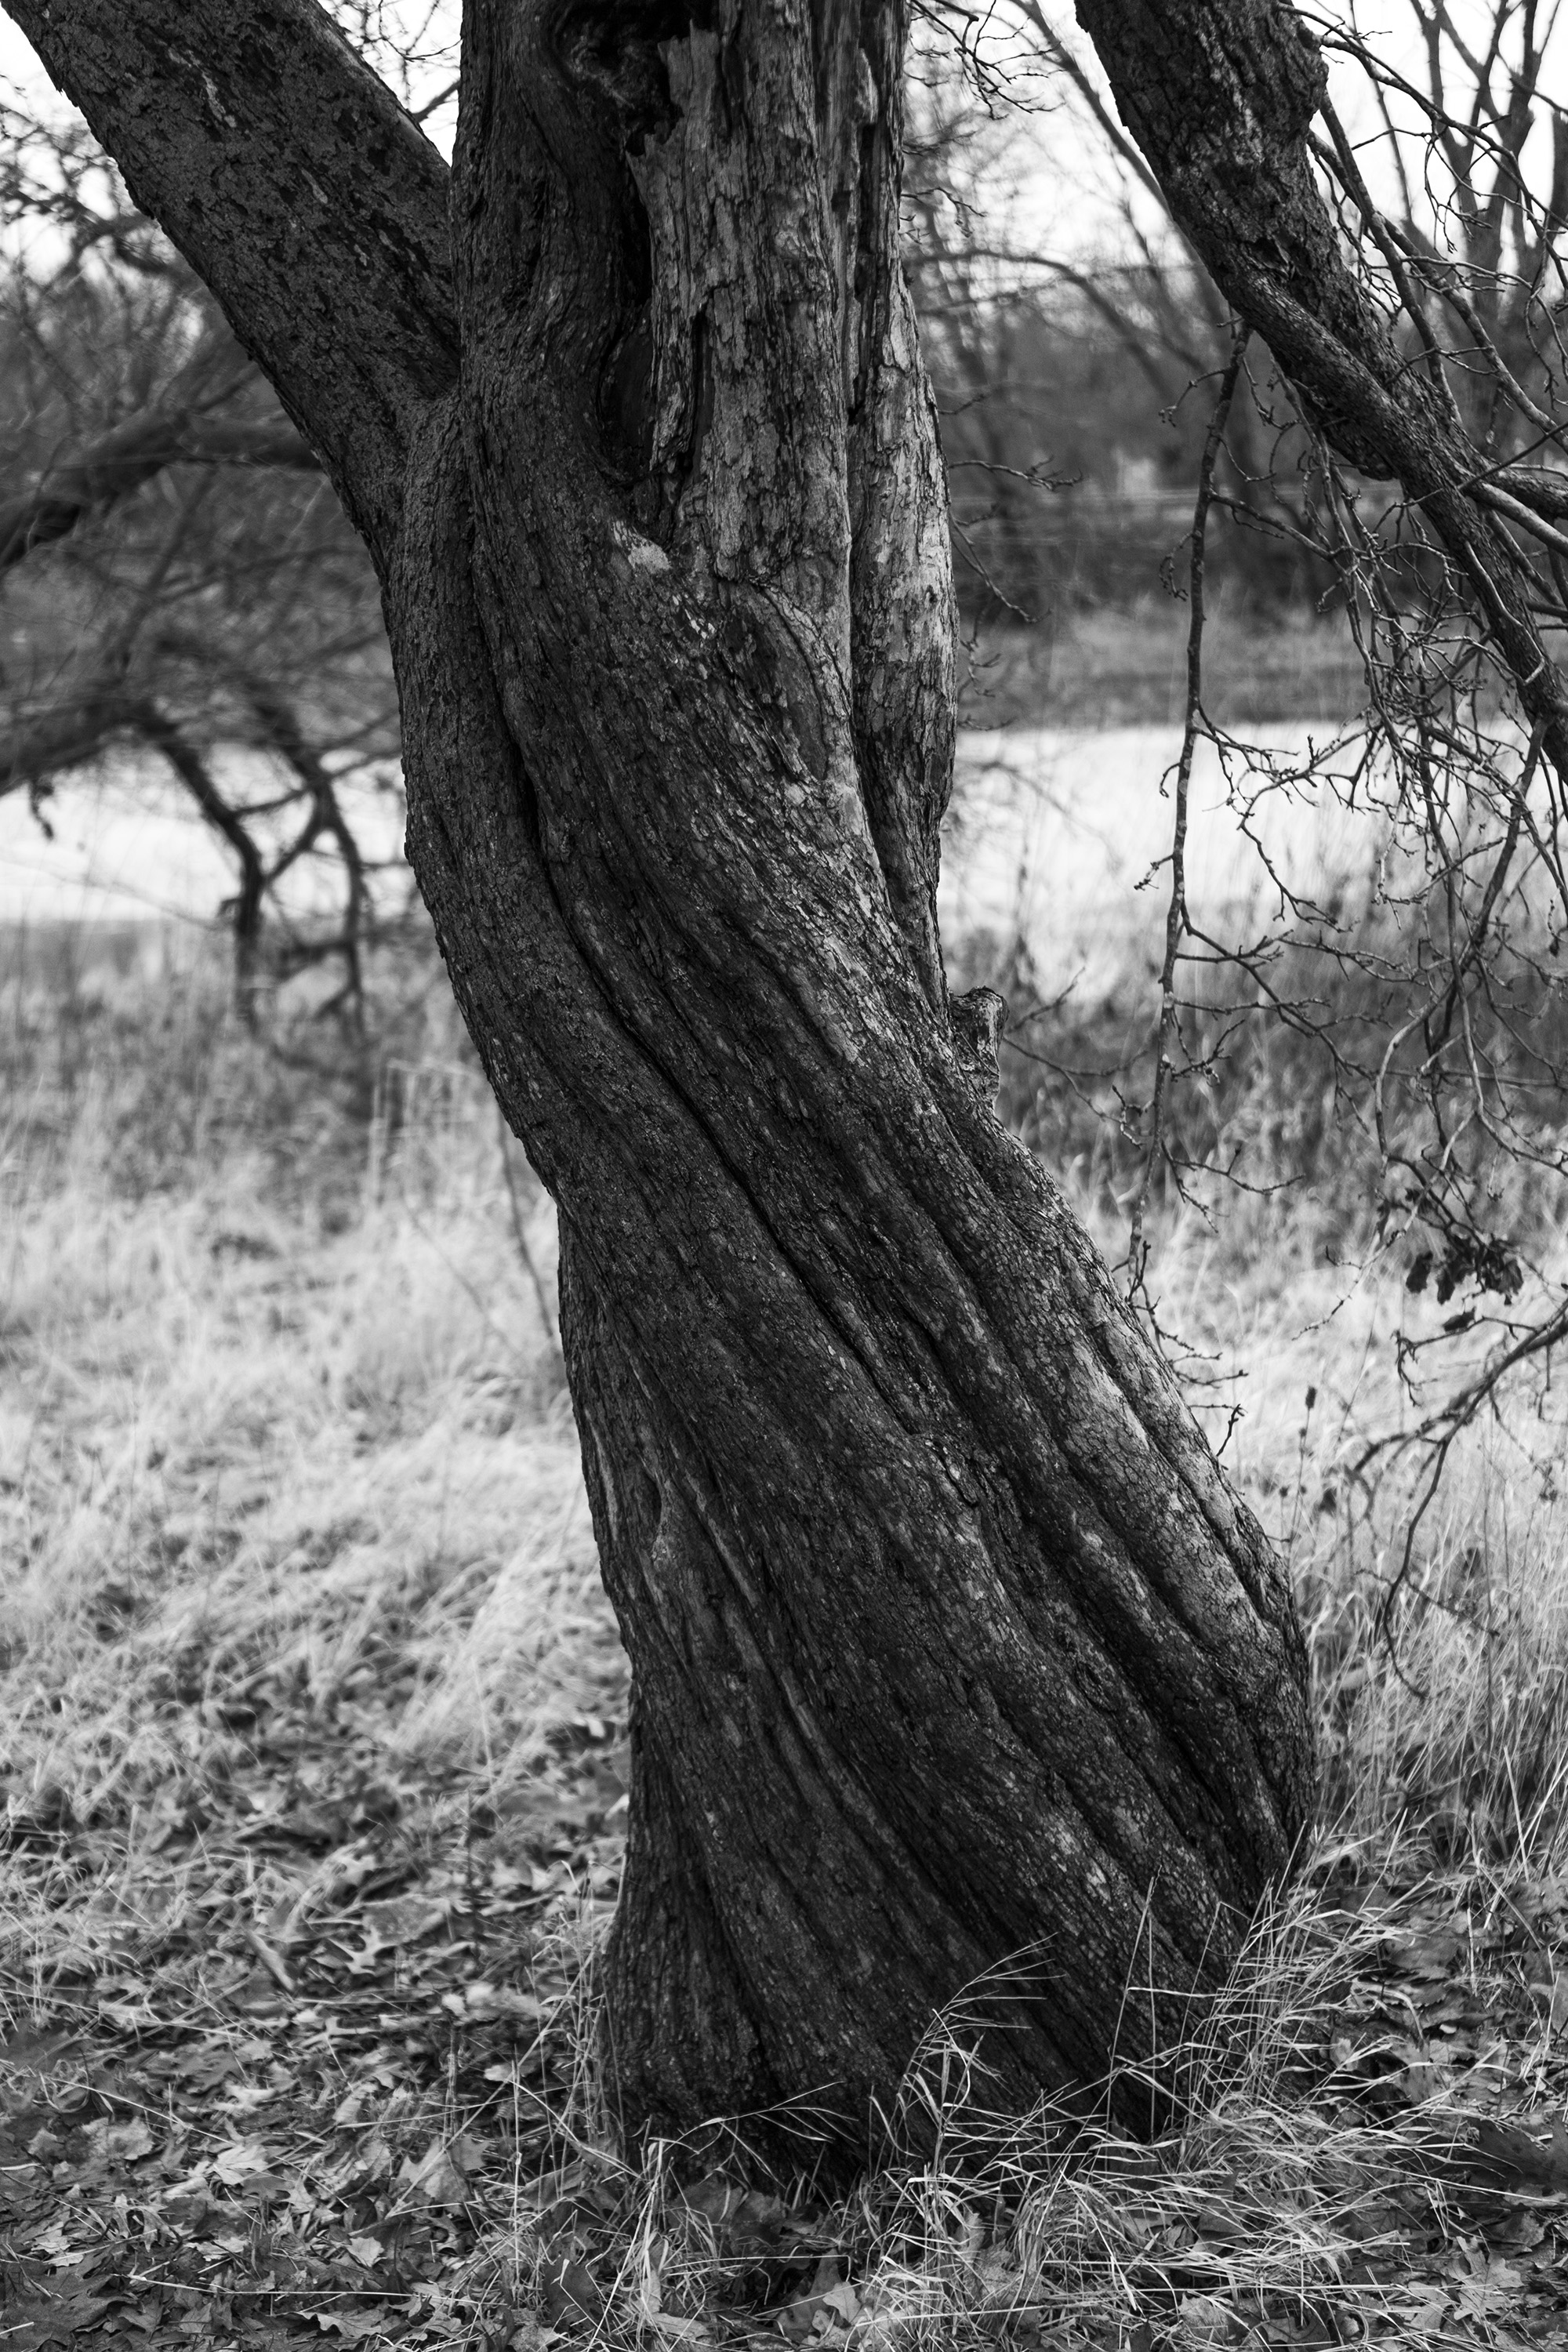 Twisted tree trunk in Gompers Park, Chicago IL / Darker than Green